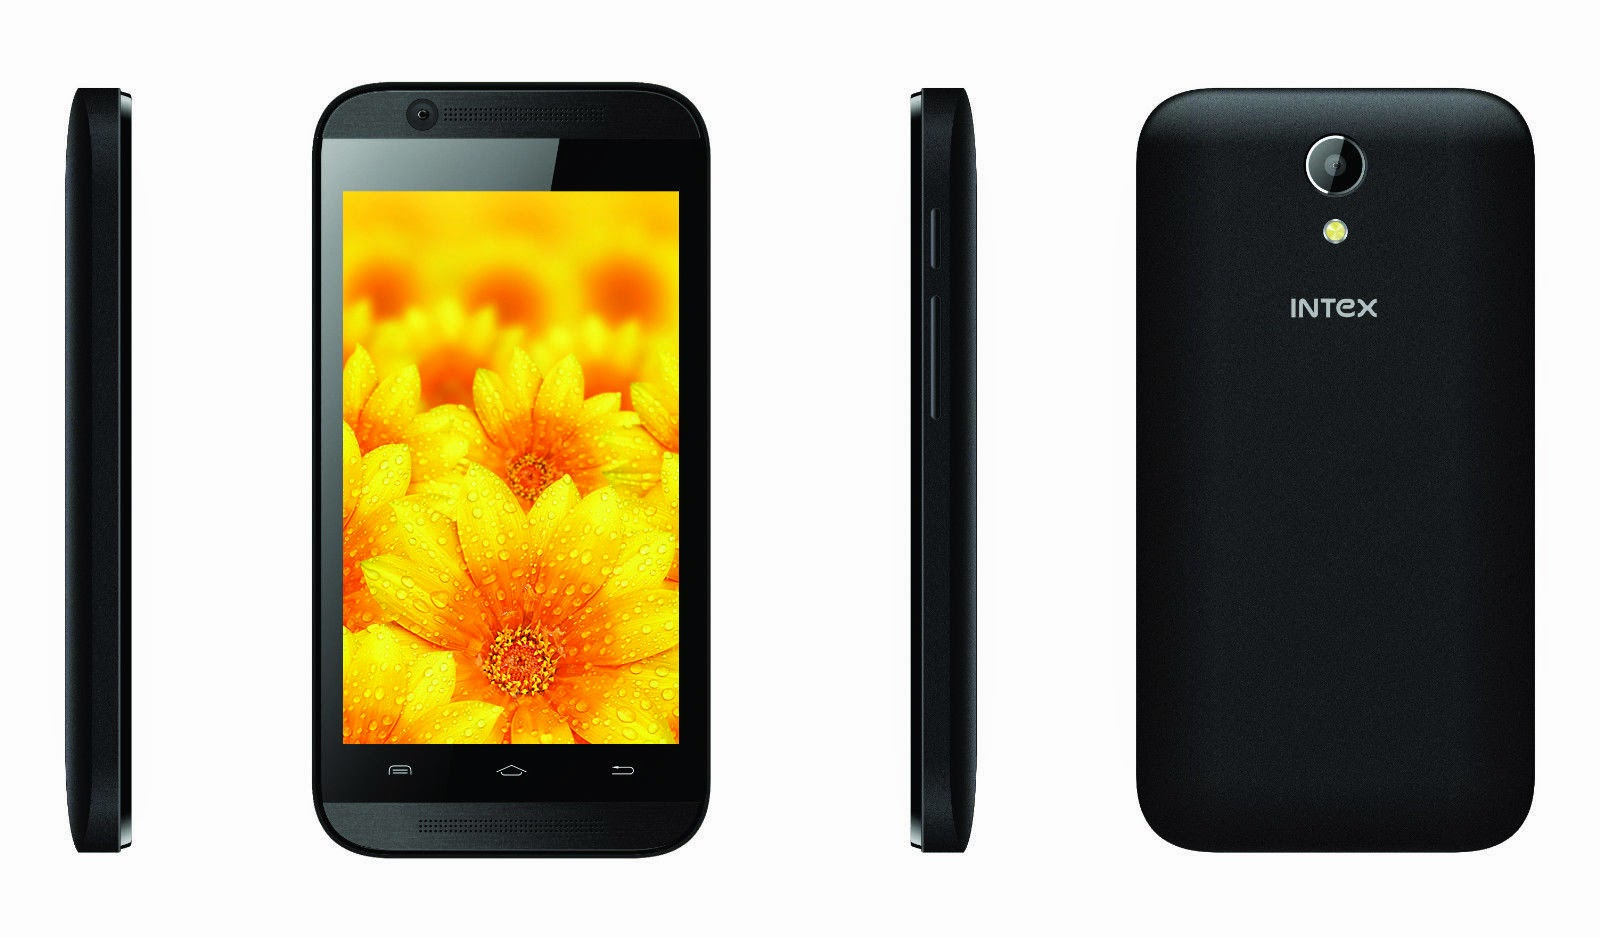 New Launch Intex Aqua 4X Mobile Phone | 2MP Cam | 3G| 1.0GHz Dual Core for Rs 2699